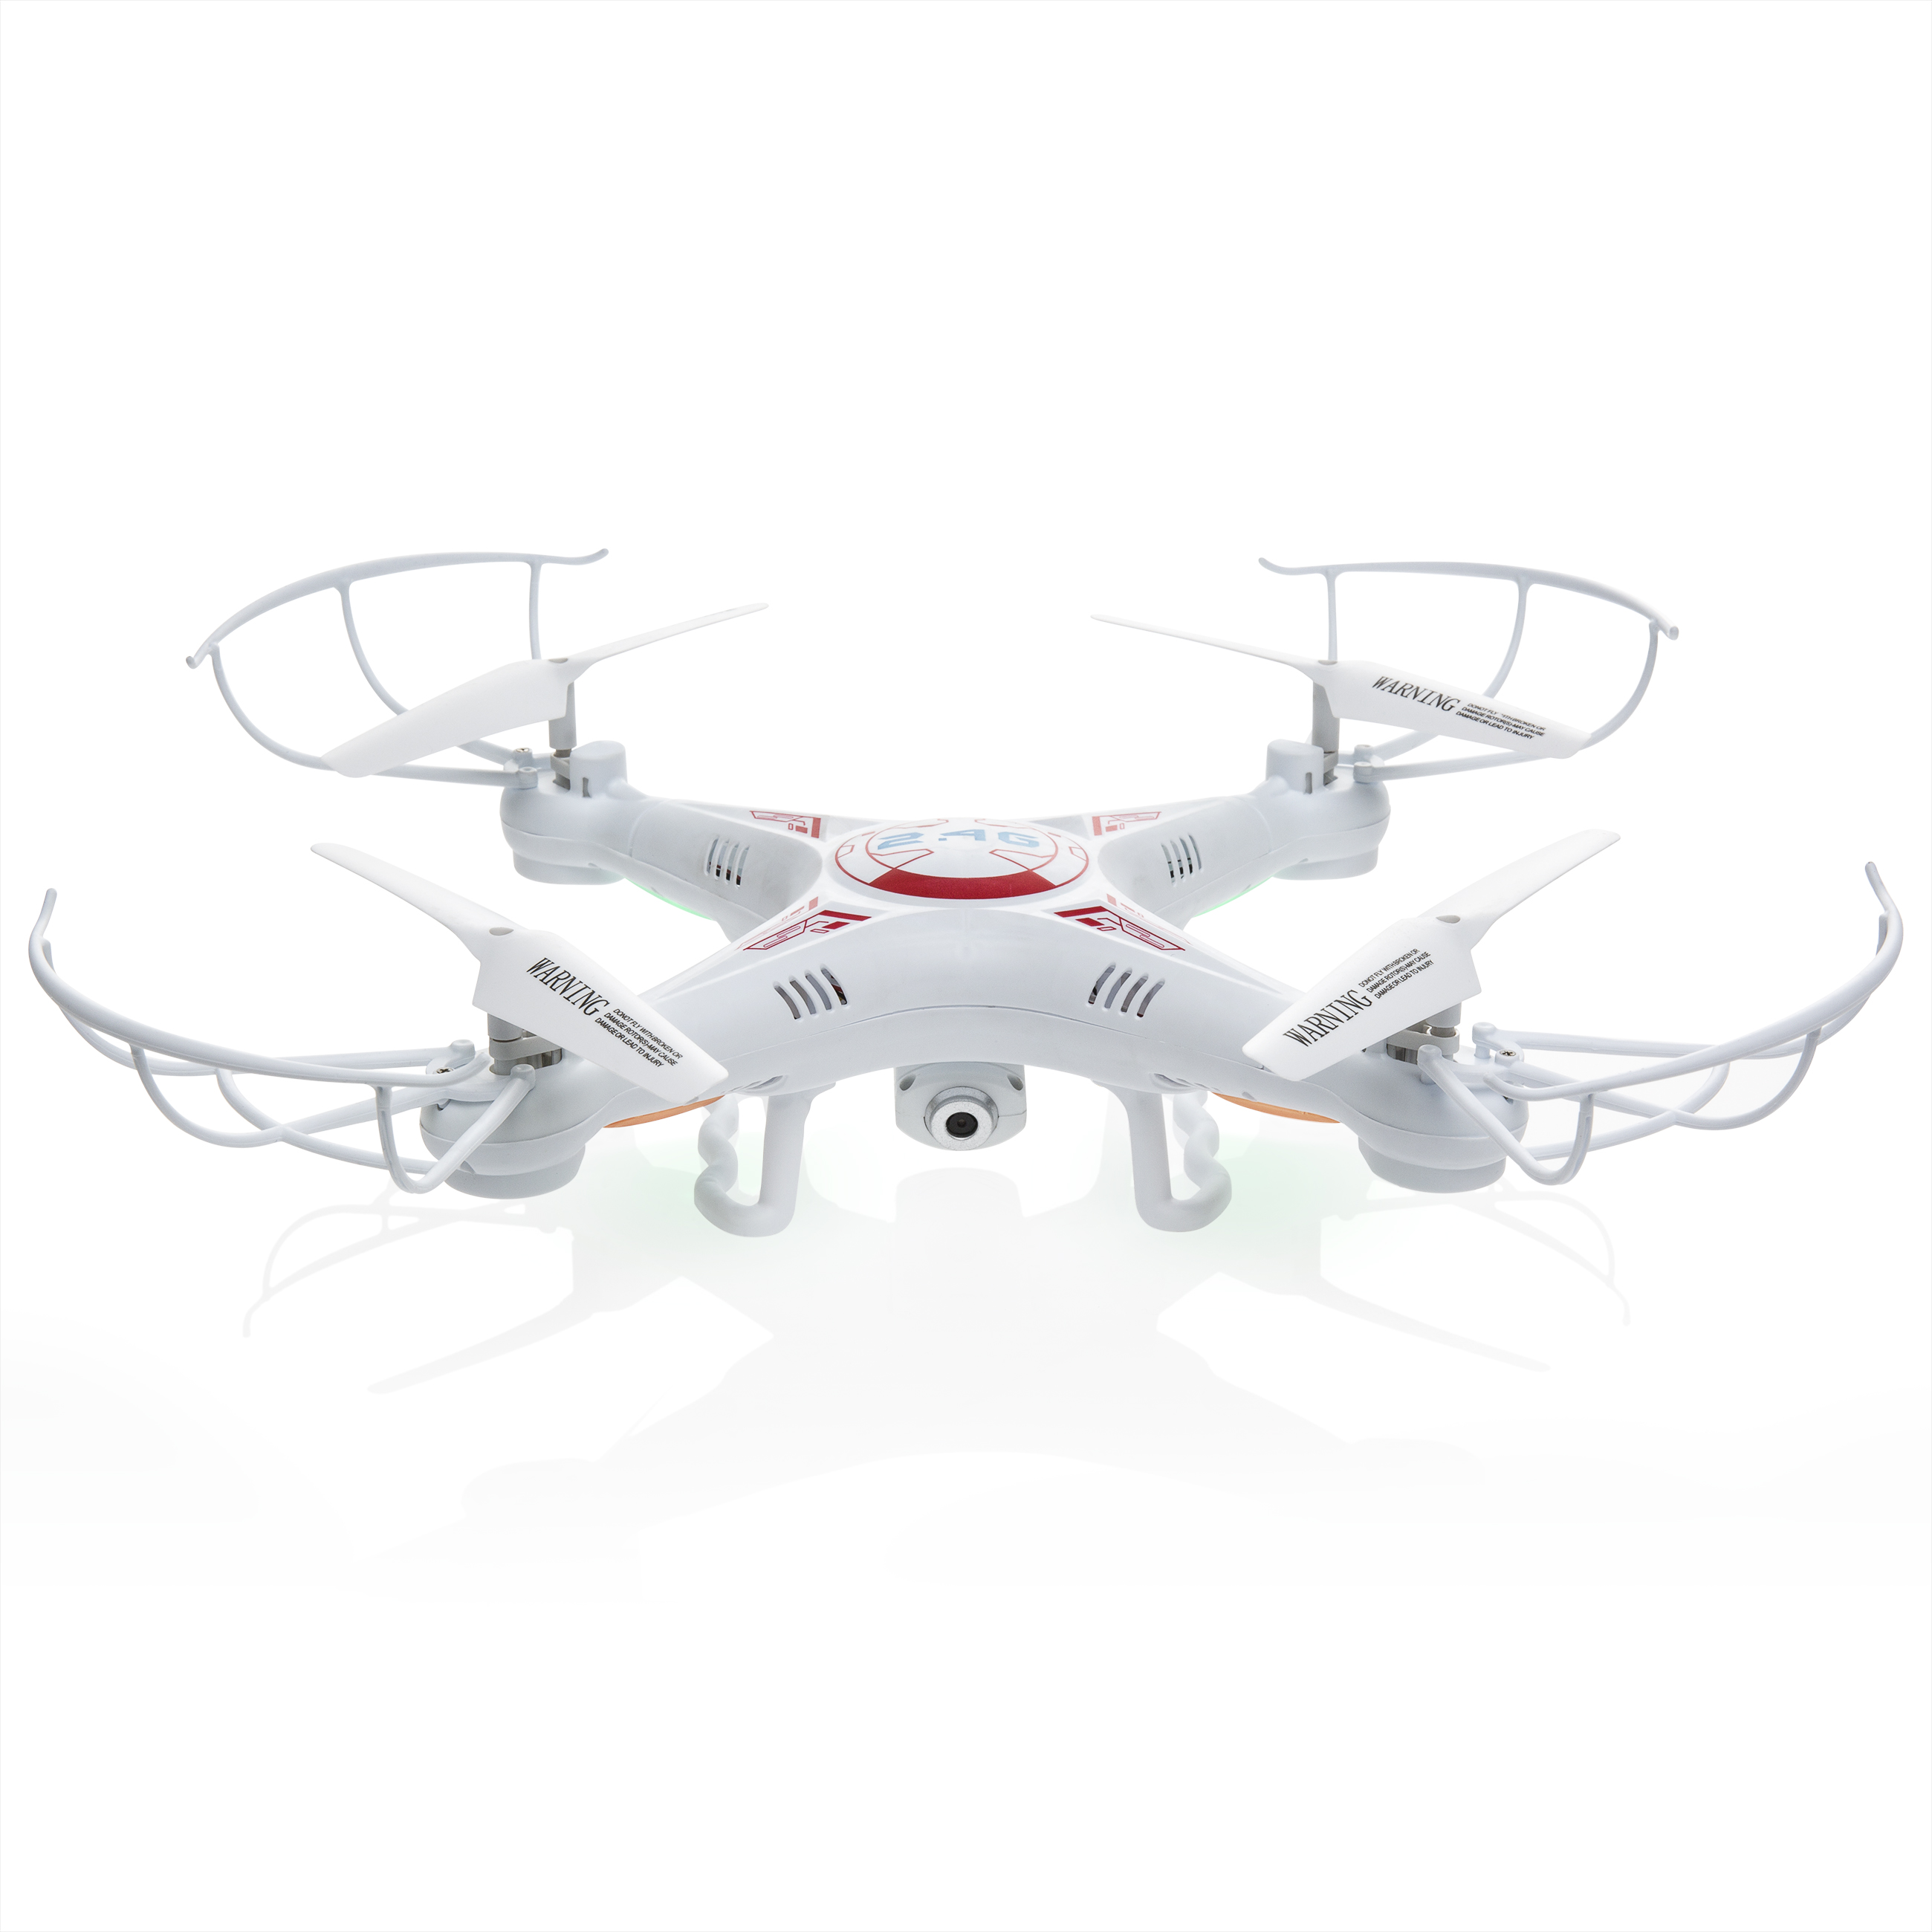 remote copter with camera with 361982522767 on Cheerson Cx 30 User Manual moreover Top 10 Best Cheap Micro Quadcopters Under 100 Usd further Drone Quadcopter Accident Scene City moreover Parrot Bebop 2 Quadcopter Drone Review besides Watch.